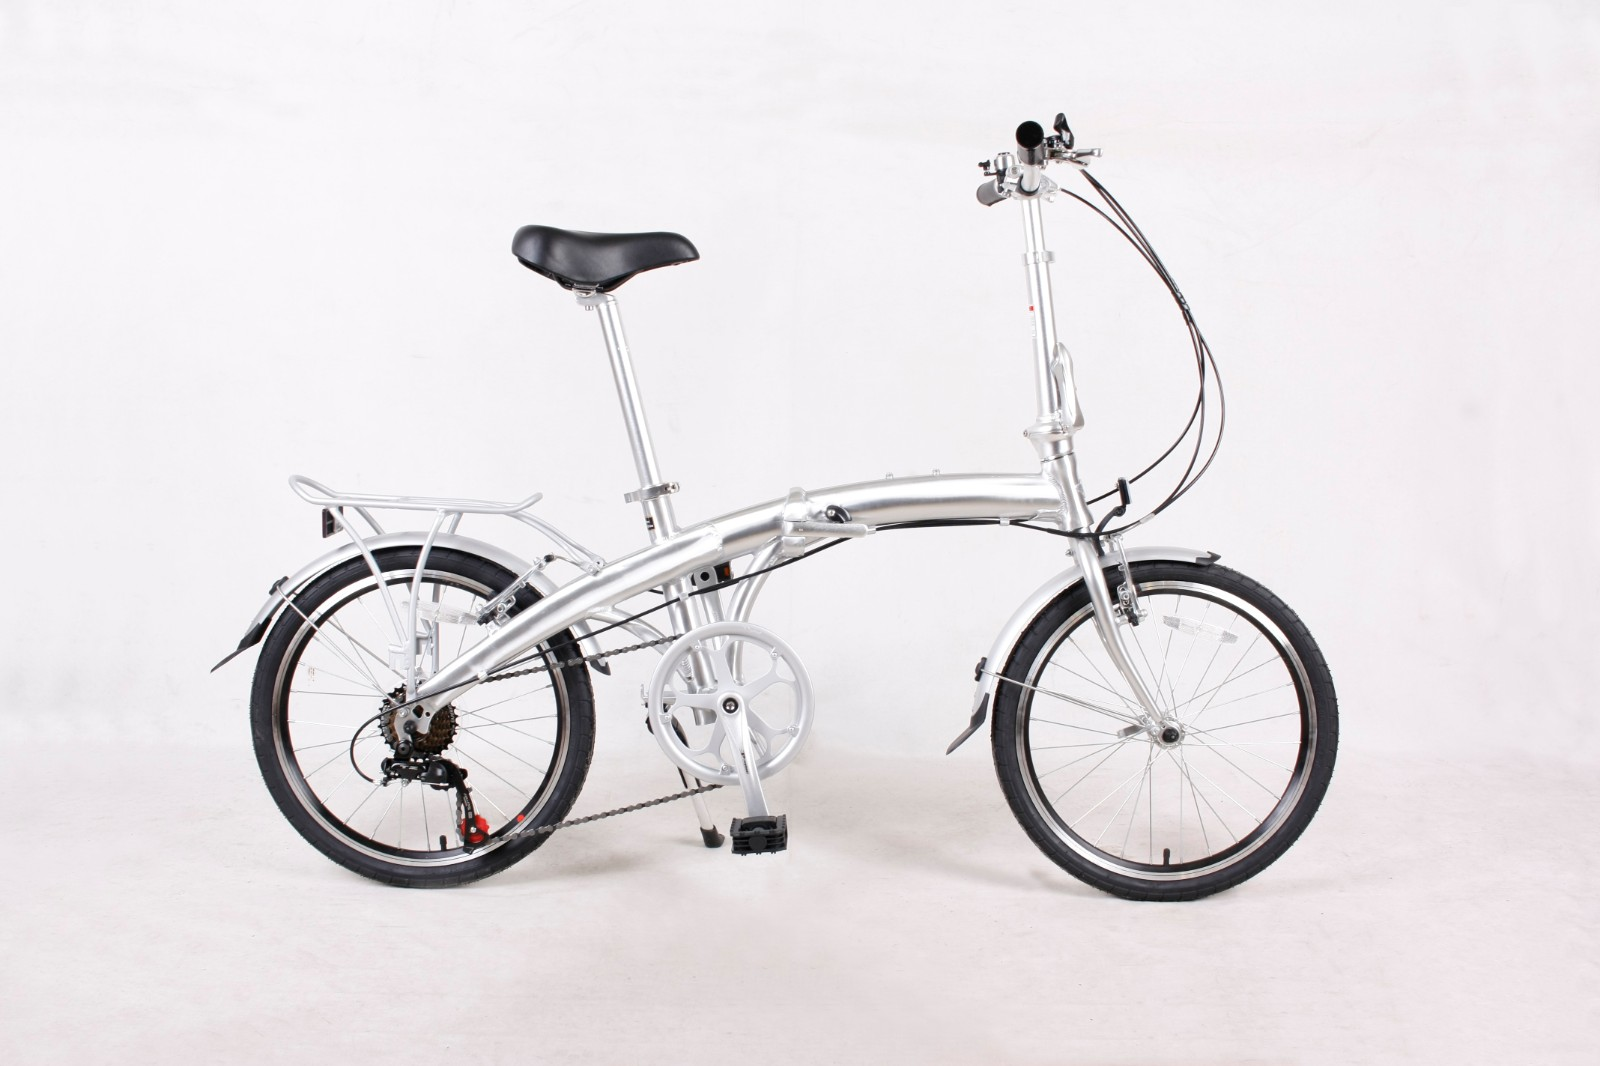 20 INCH  ALUMINUM  ALLOY  FOLDING BICYCLE  with 7 speeds